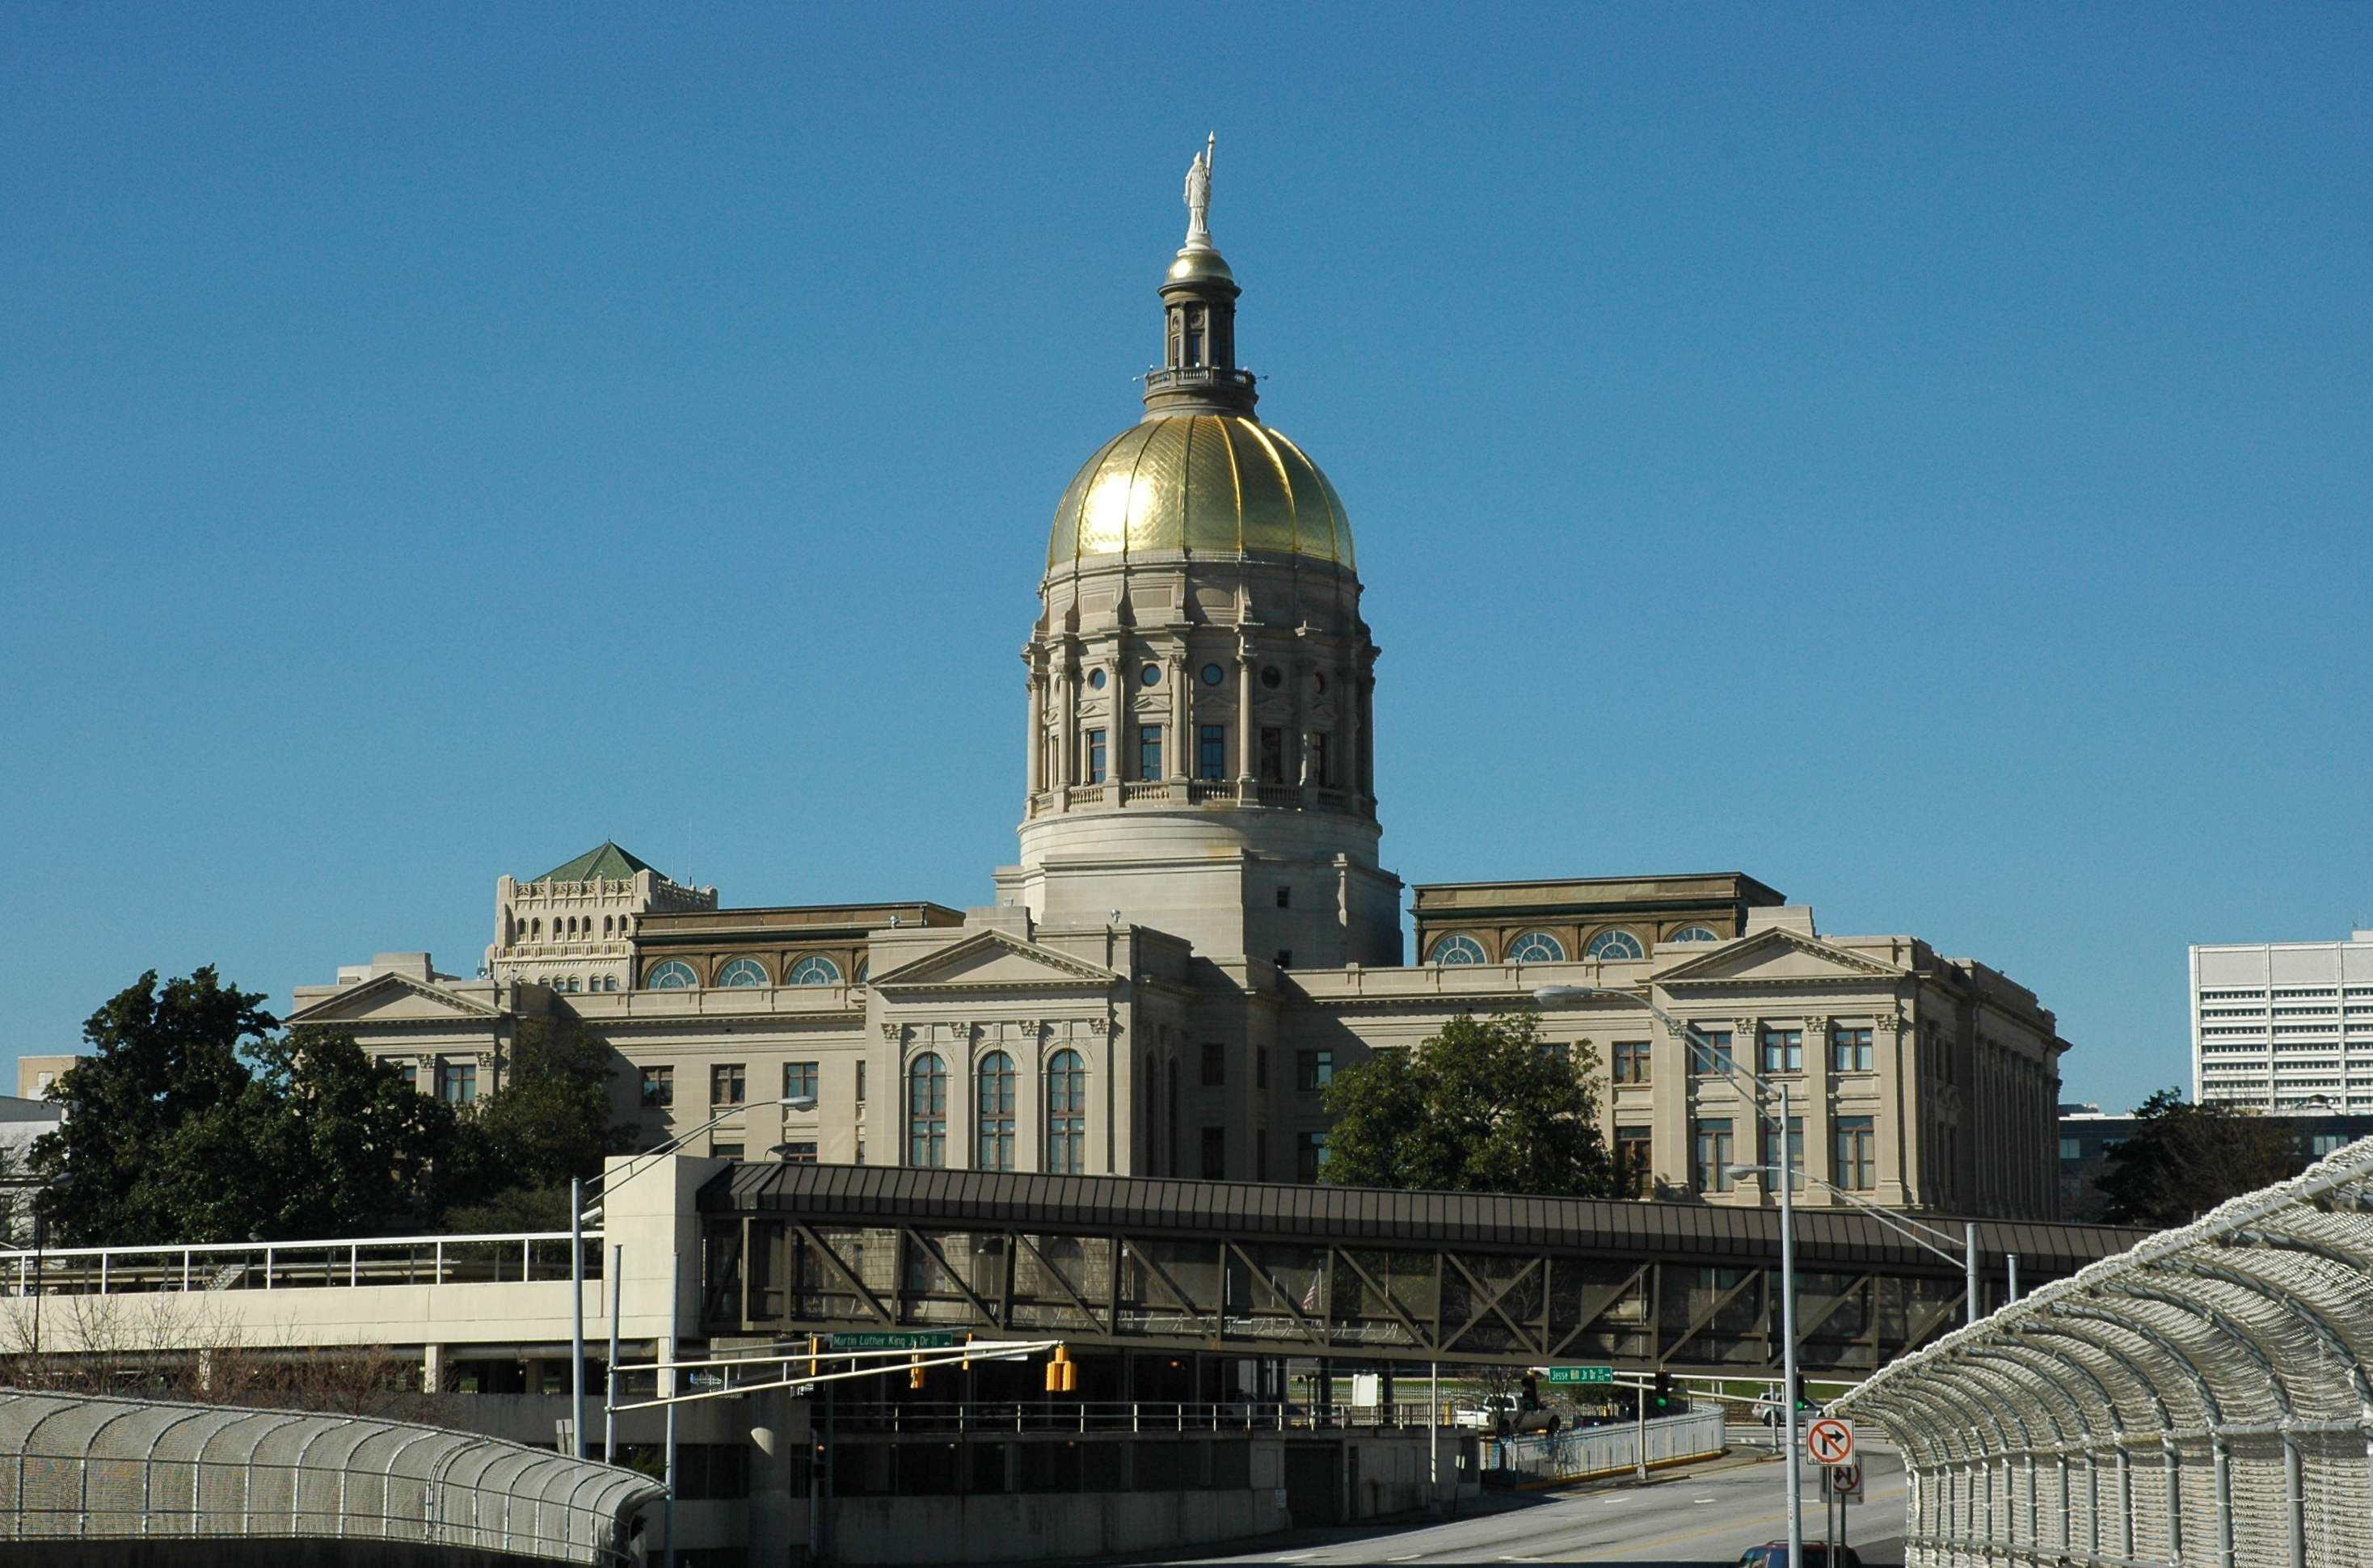 The Georgia State Capitol in Atlanta with the distinctive gold dome ...